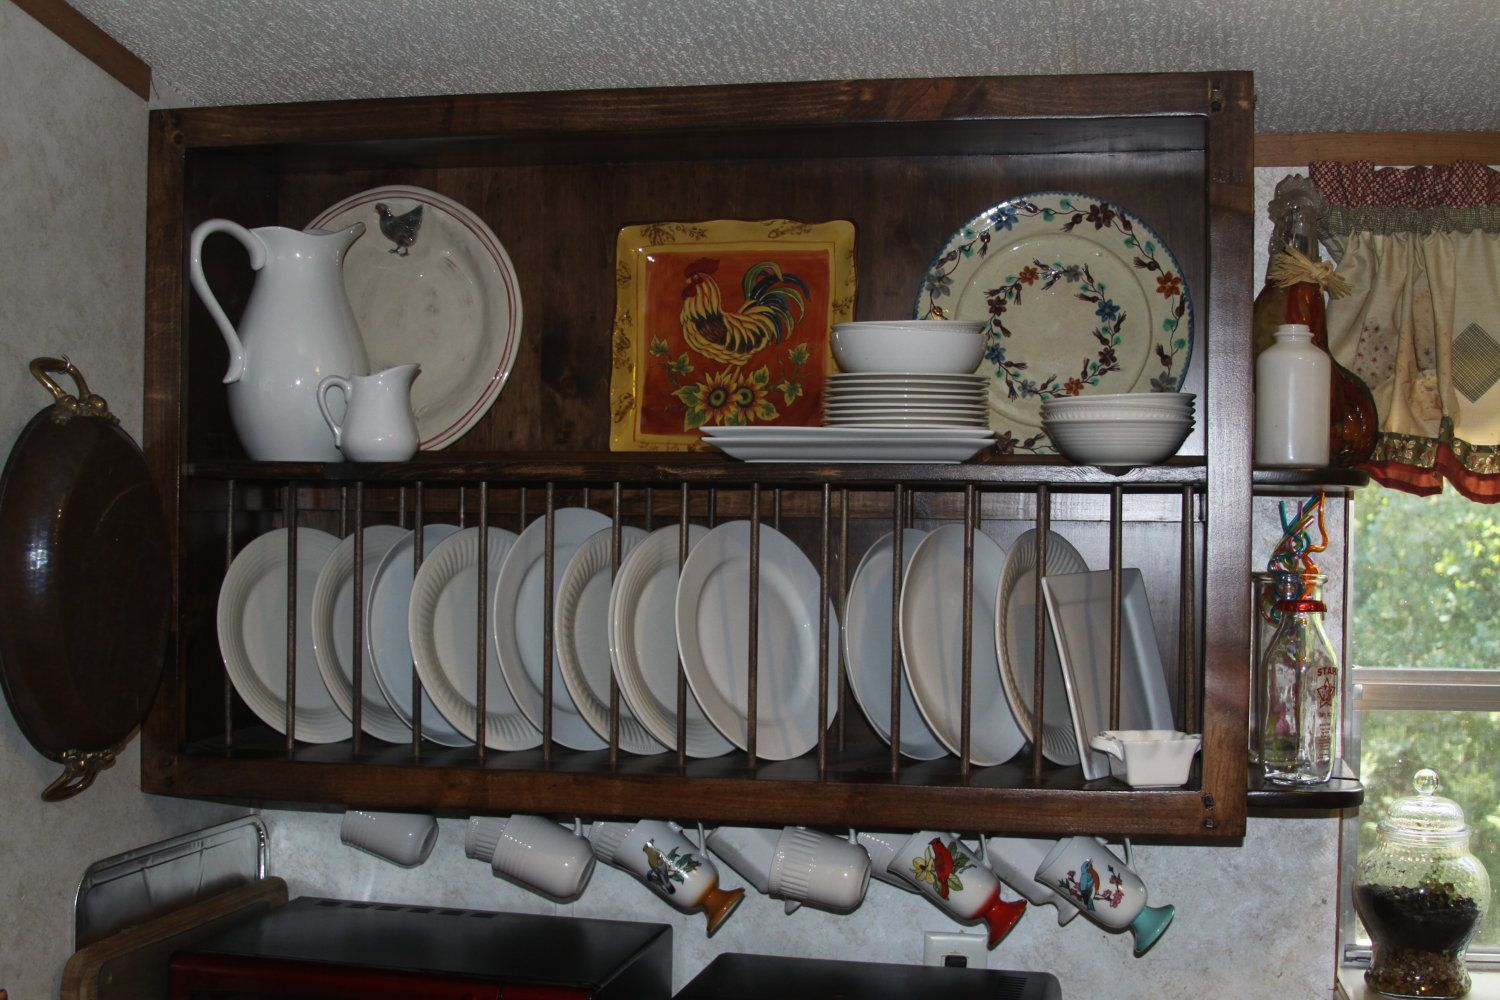 Decorating Ideas Amazing Wooden Plate Rack Wall Mounted Custom Kitchen Cabinet Open Shelves Along With & Decorating Ideas Amazing Wooden Plate Rack Wall Mounted Custom ...